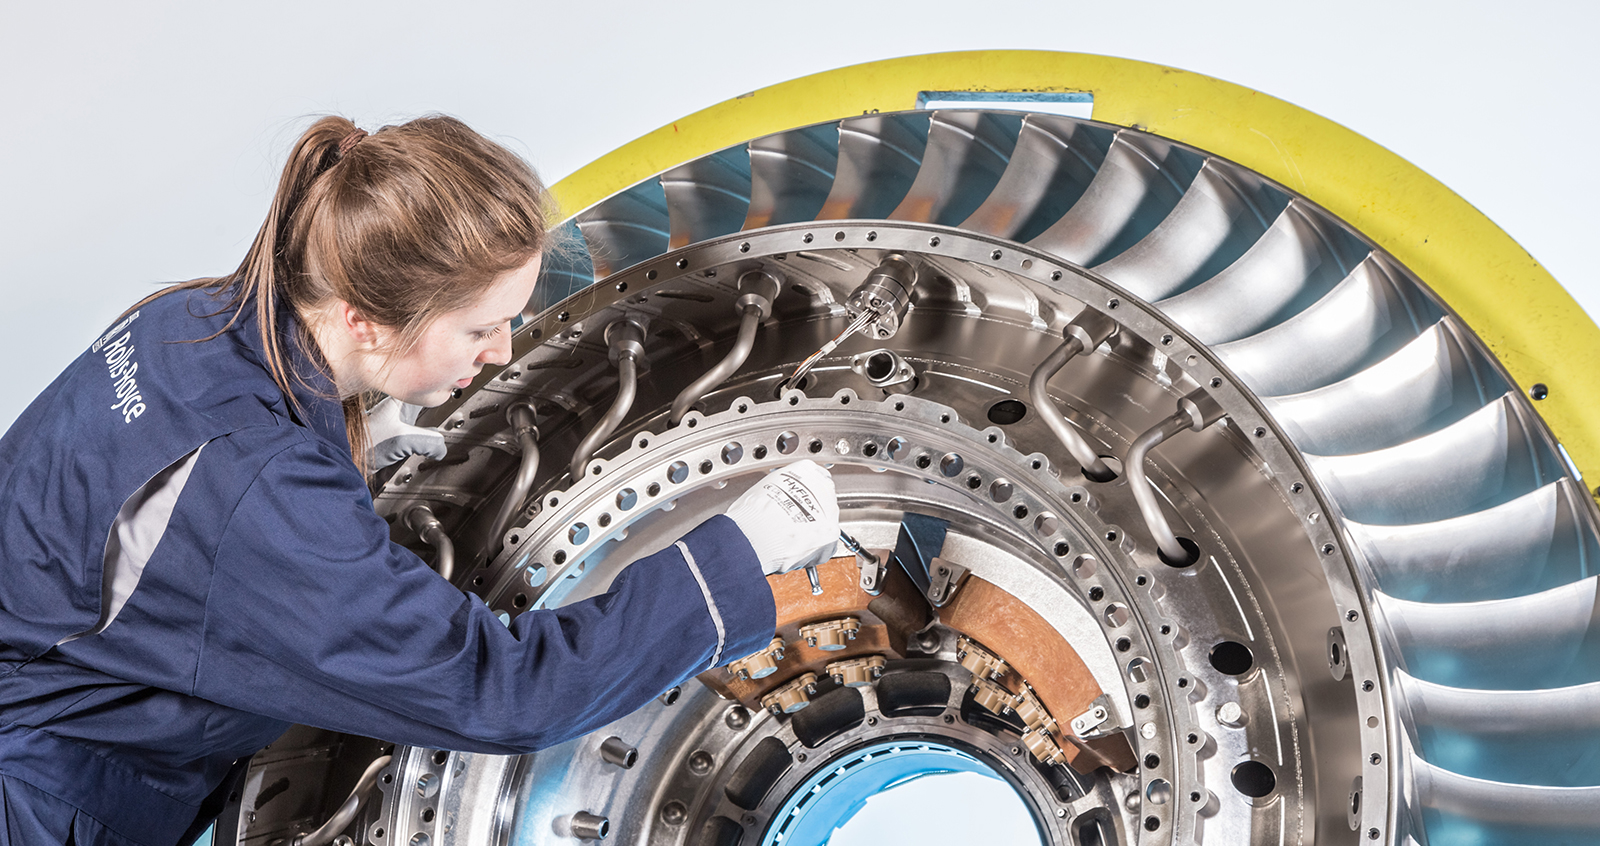 Rolls-Royce engine front bearing housing produced by 3-d printing: it's the largest aero engine structure to fly, incorporating ALM components, in the world to-date.